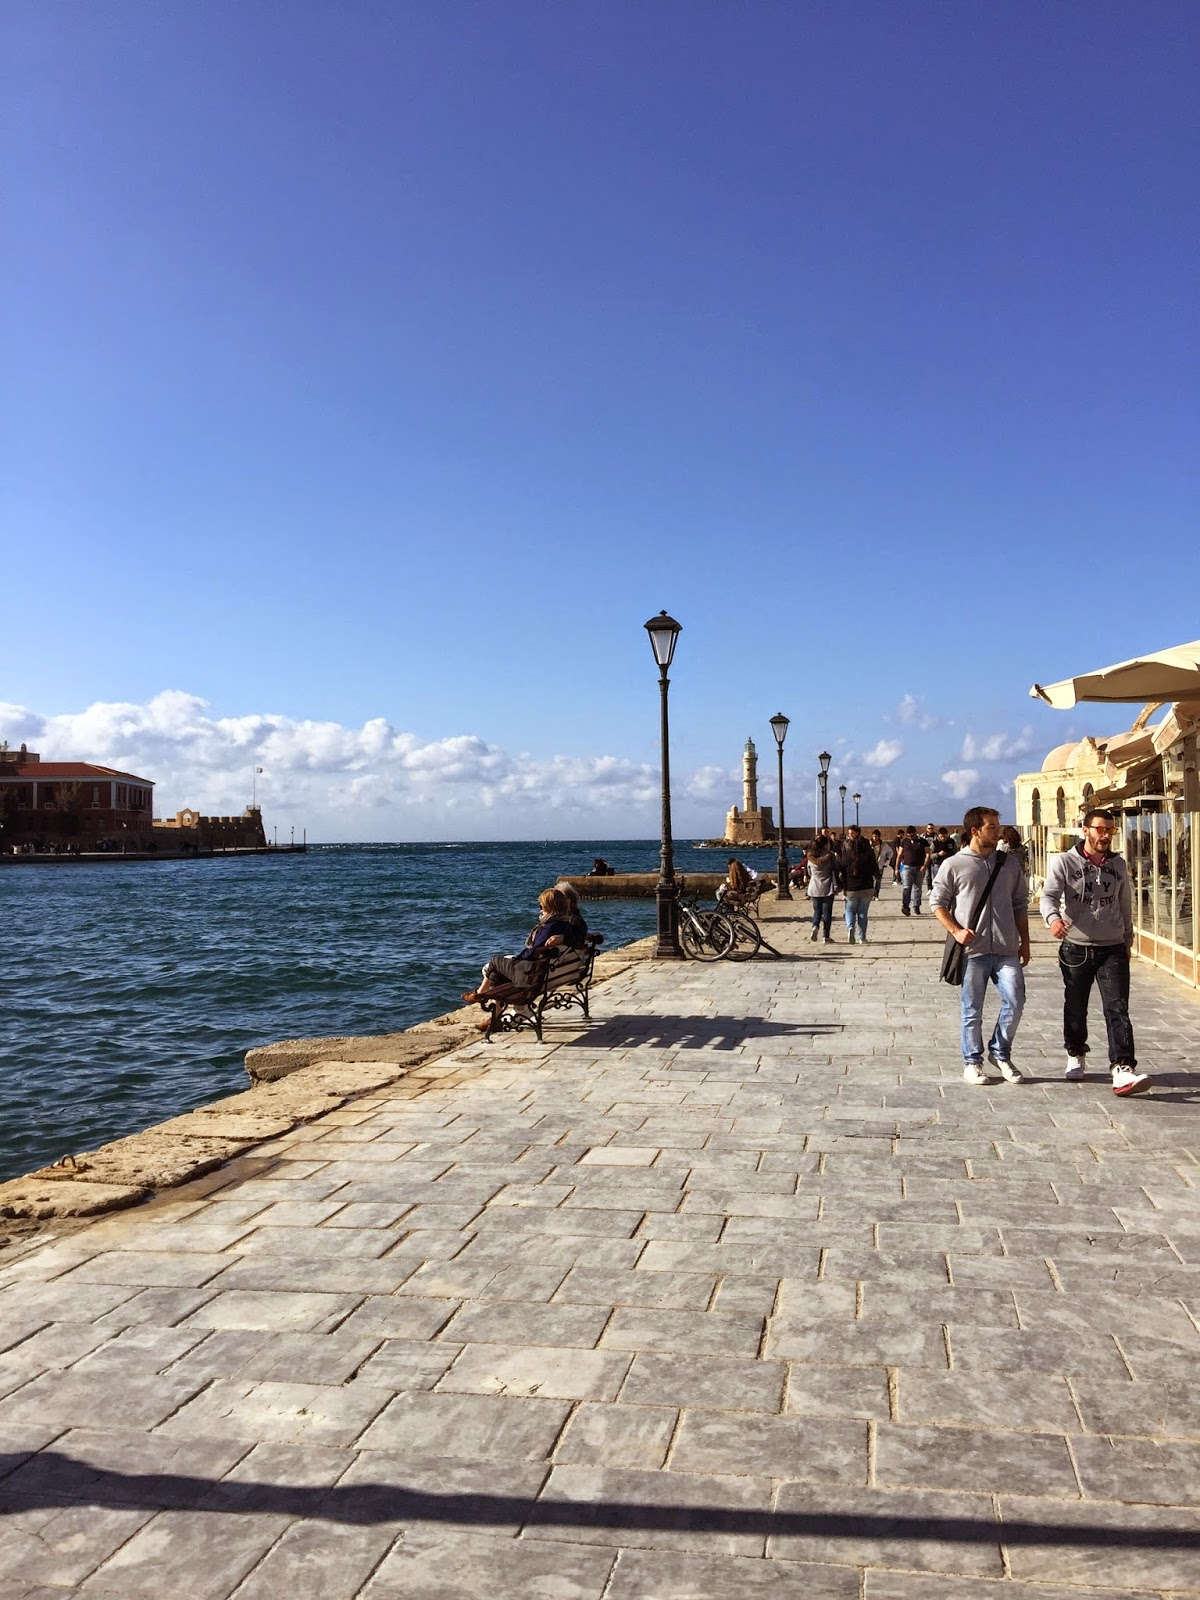 Harbor in Chania on Greek island of Crete